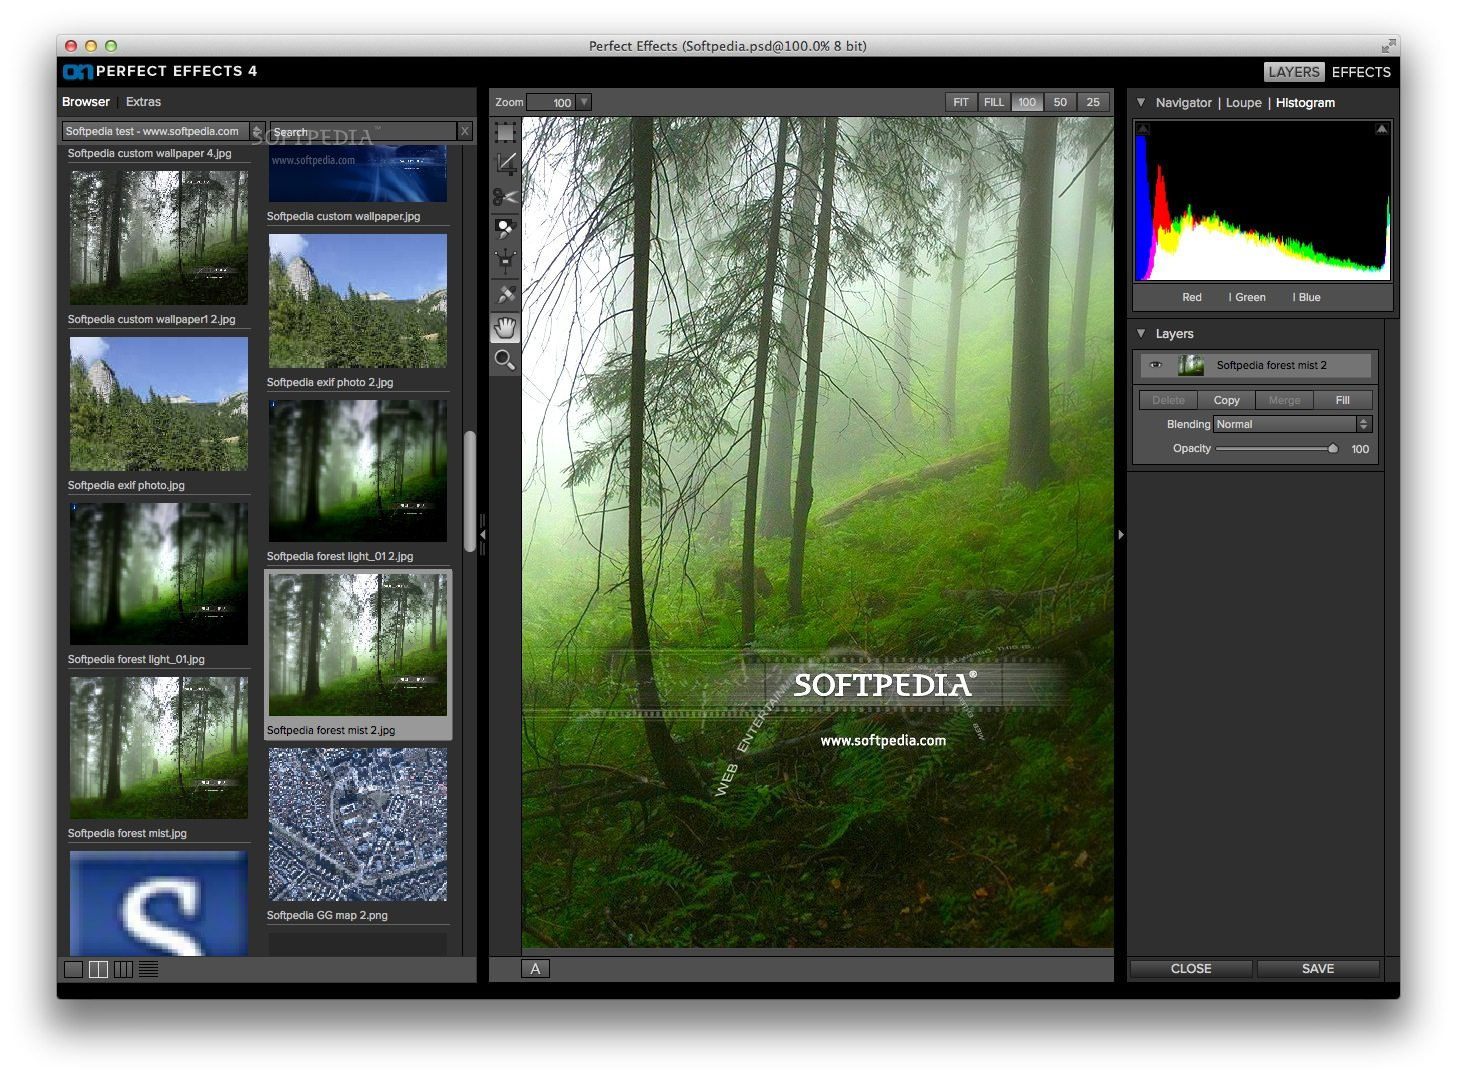 Perfect Effects Premium screenshot 2 - Here you can view the image histogram and add multiple effects to it.